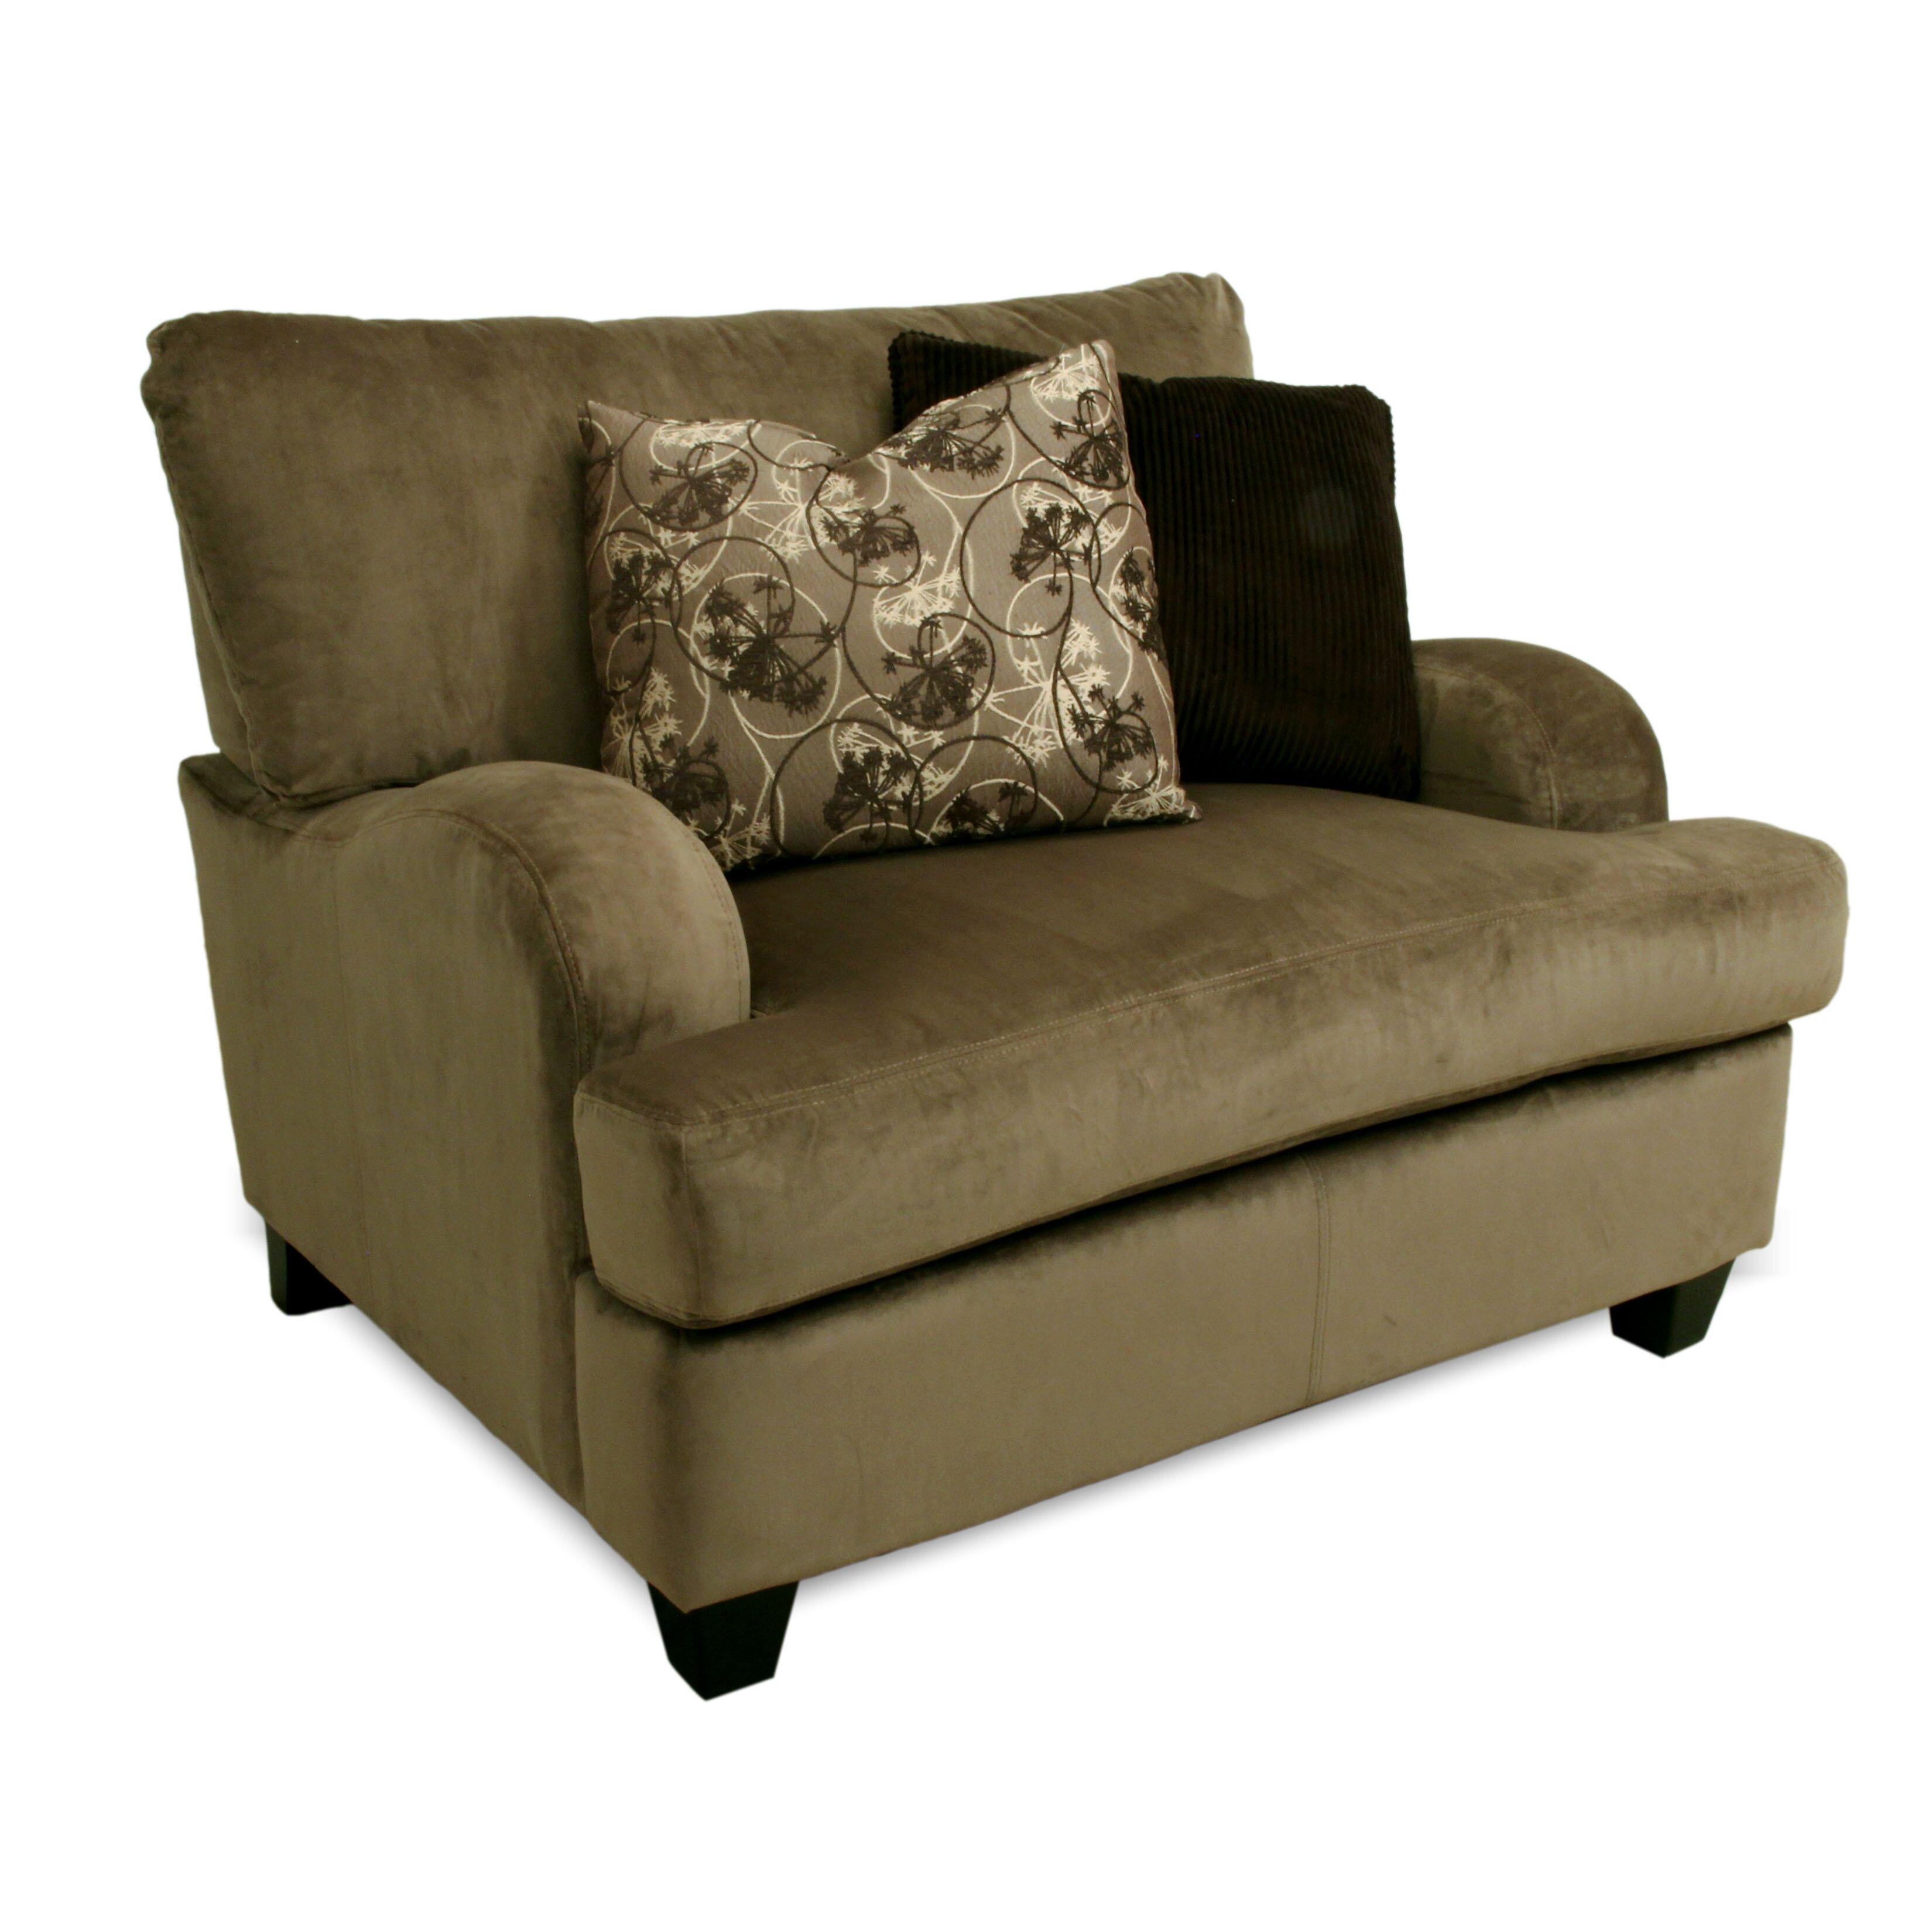 Living Room Chair And A Half Franklin Soho Living Room Collection Reviews Wayfair